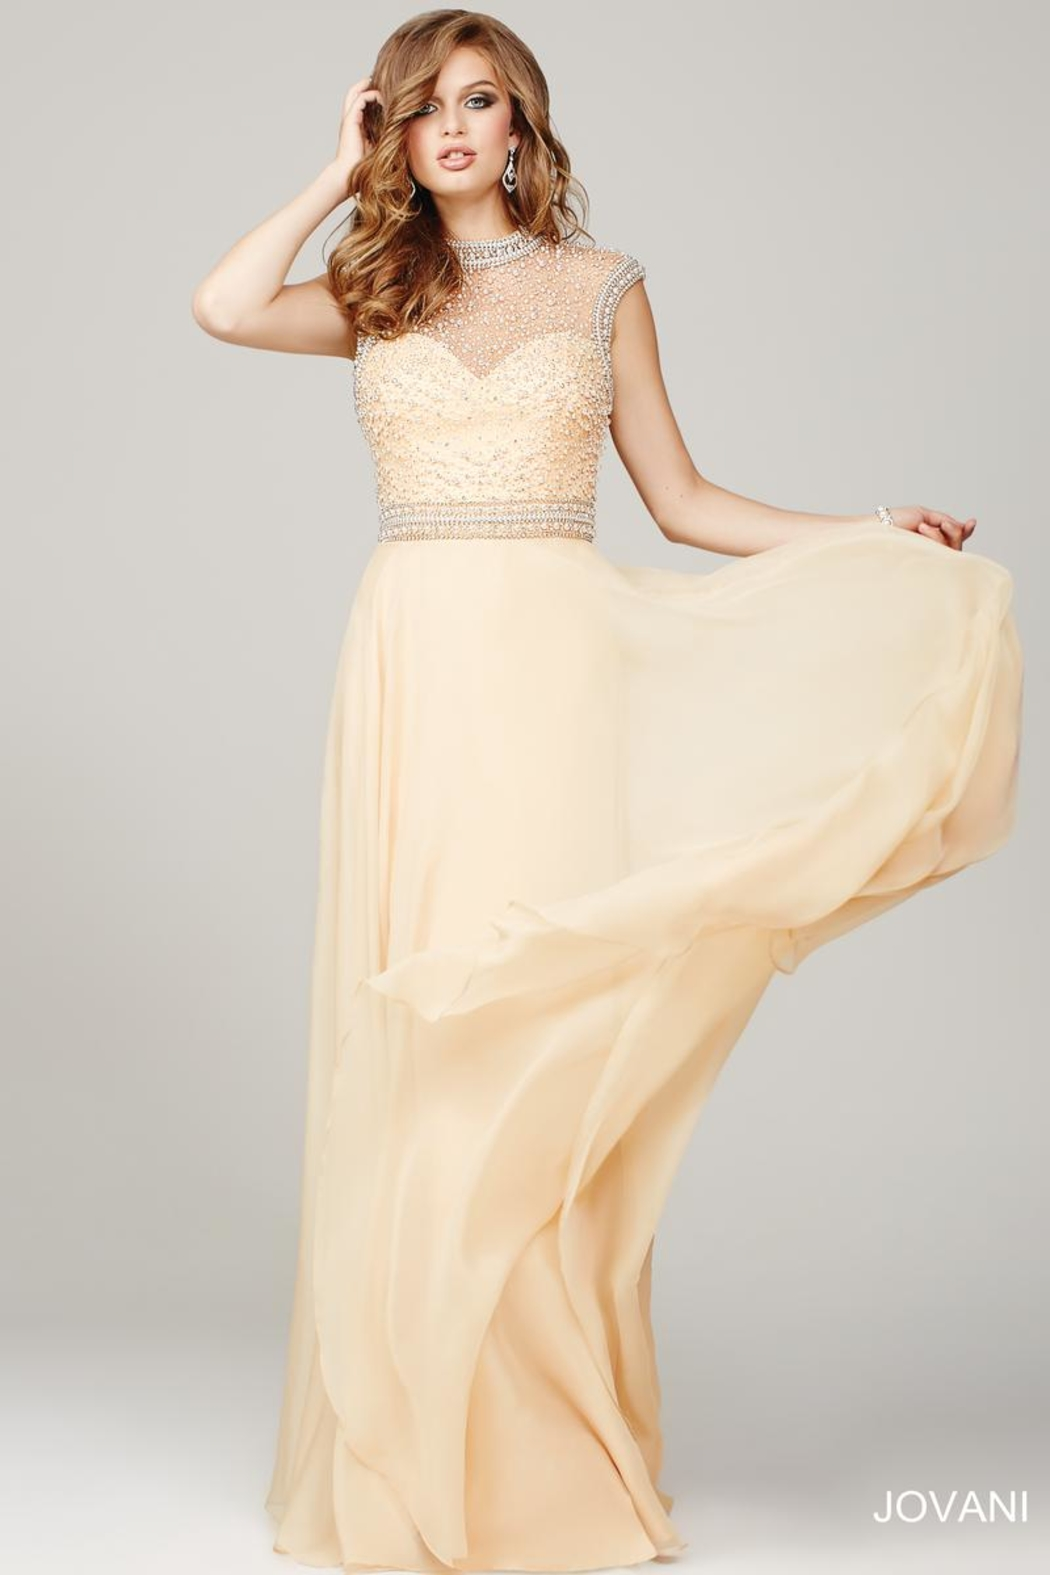 Jovani Cream and Pearl Evening Gown - Main Image